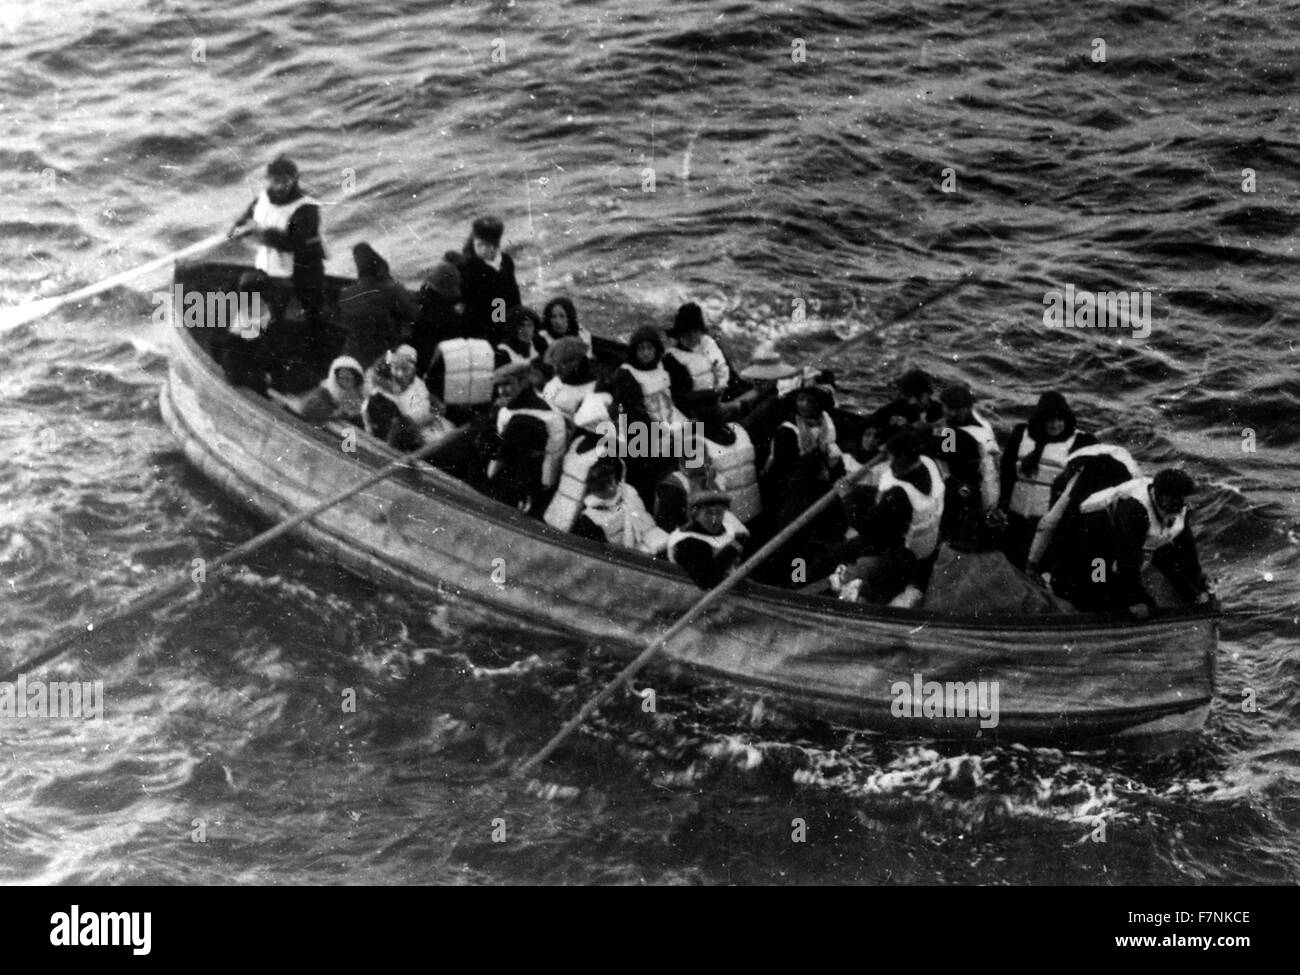 lifeboat with survivors from the SS Titanic 1912 - Stock Image